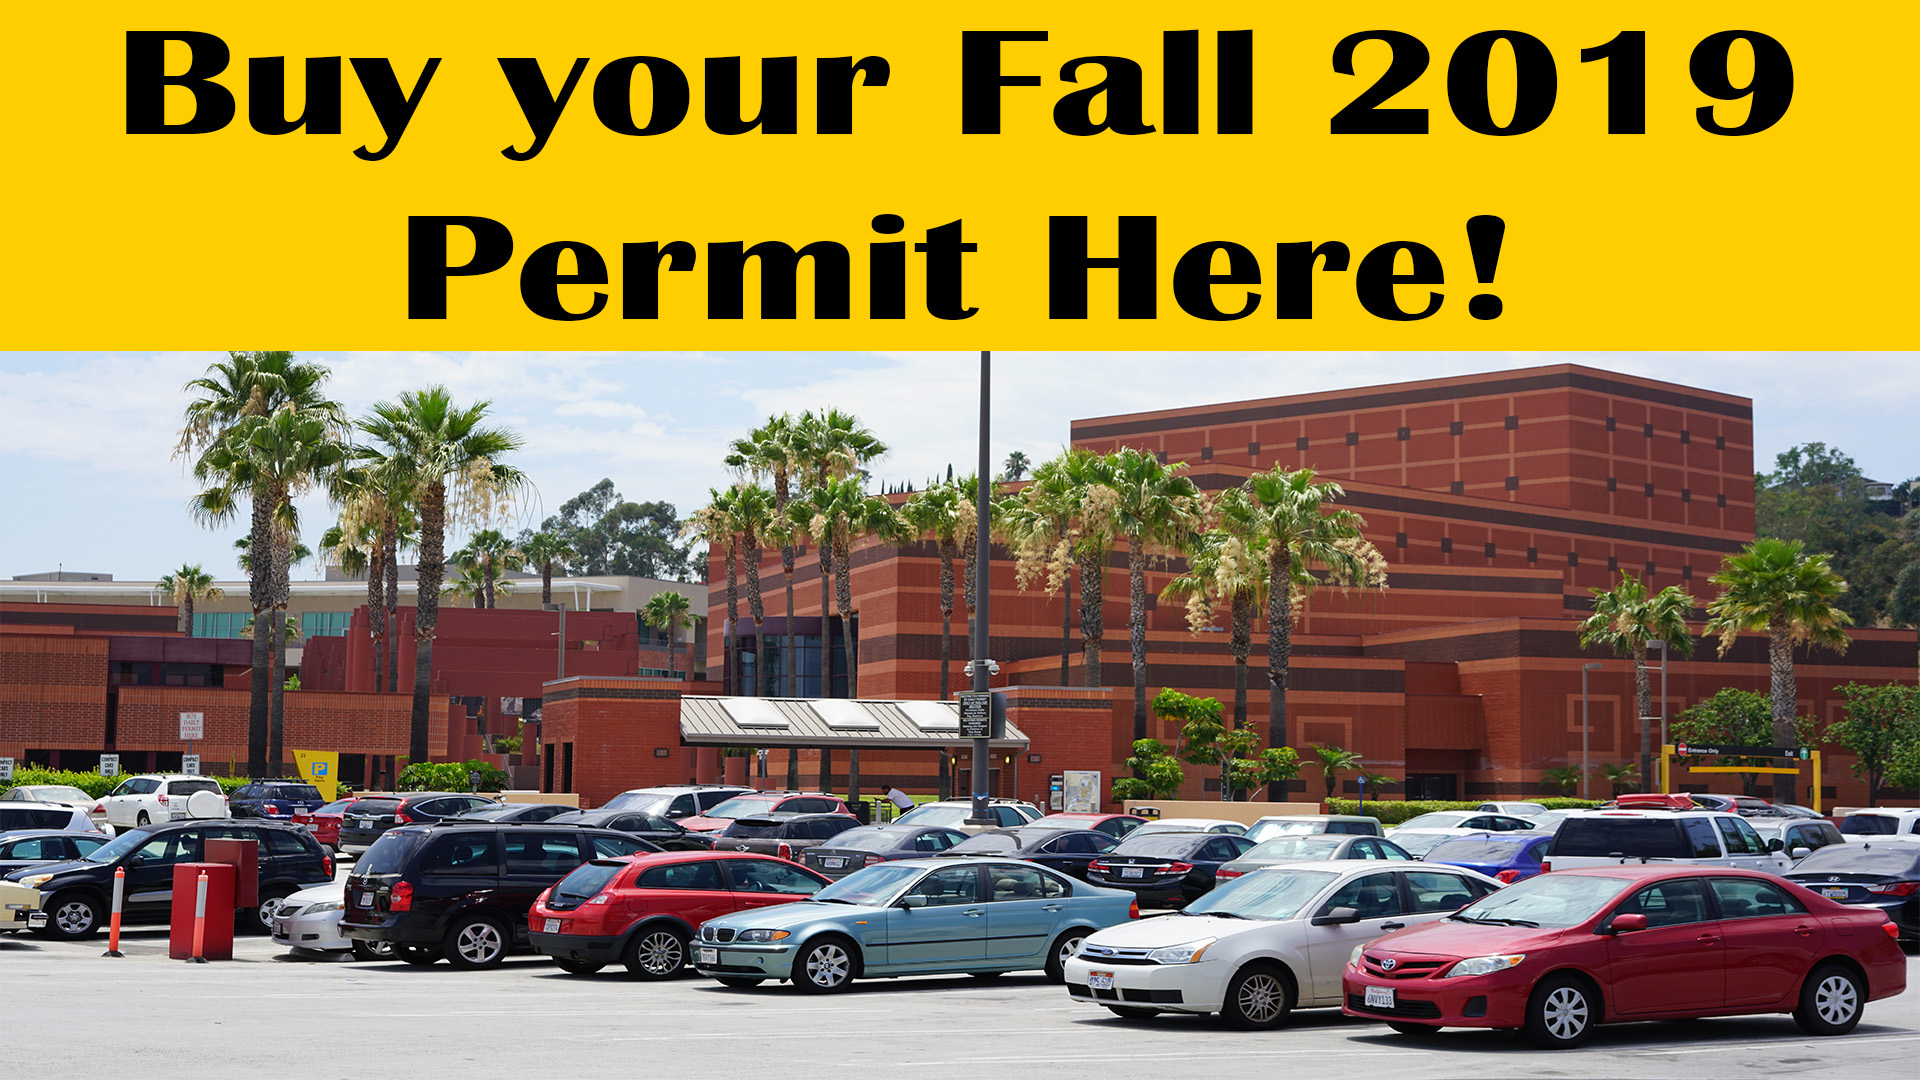 Buy A Fall 2019 Permit Here